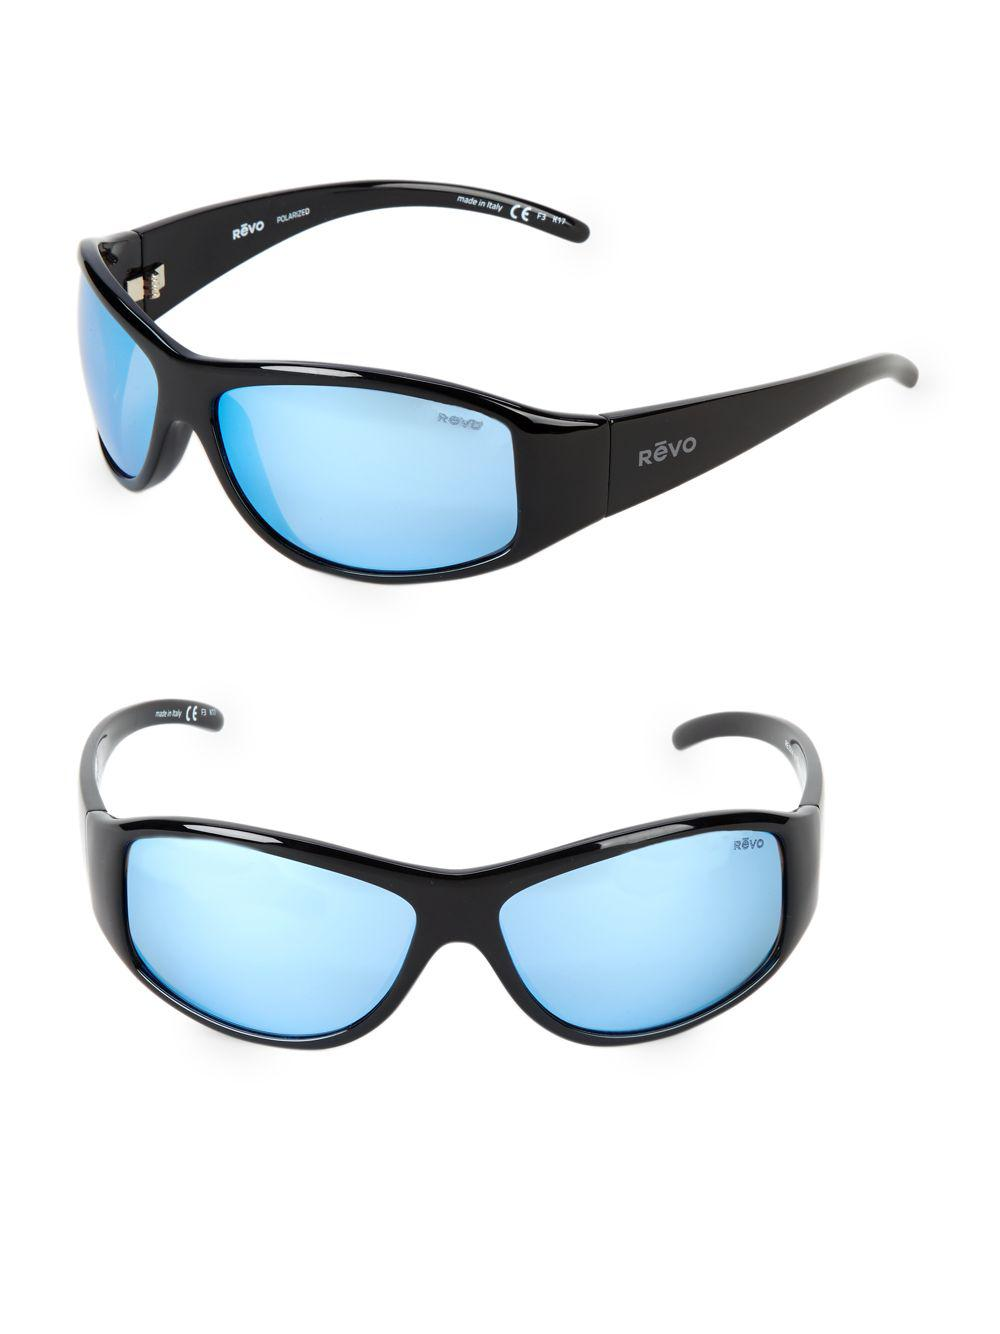 8e4c22918e6 Revo - Black 64mm Wrap Sunglasses for Men - Lyst. View fullscreen